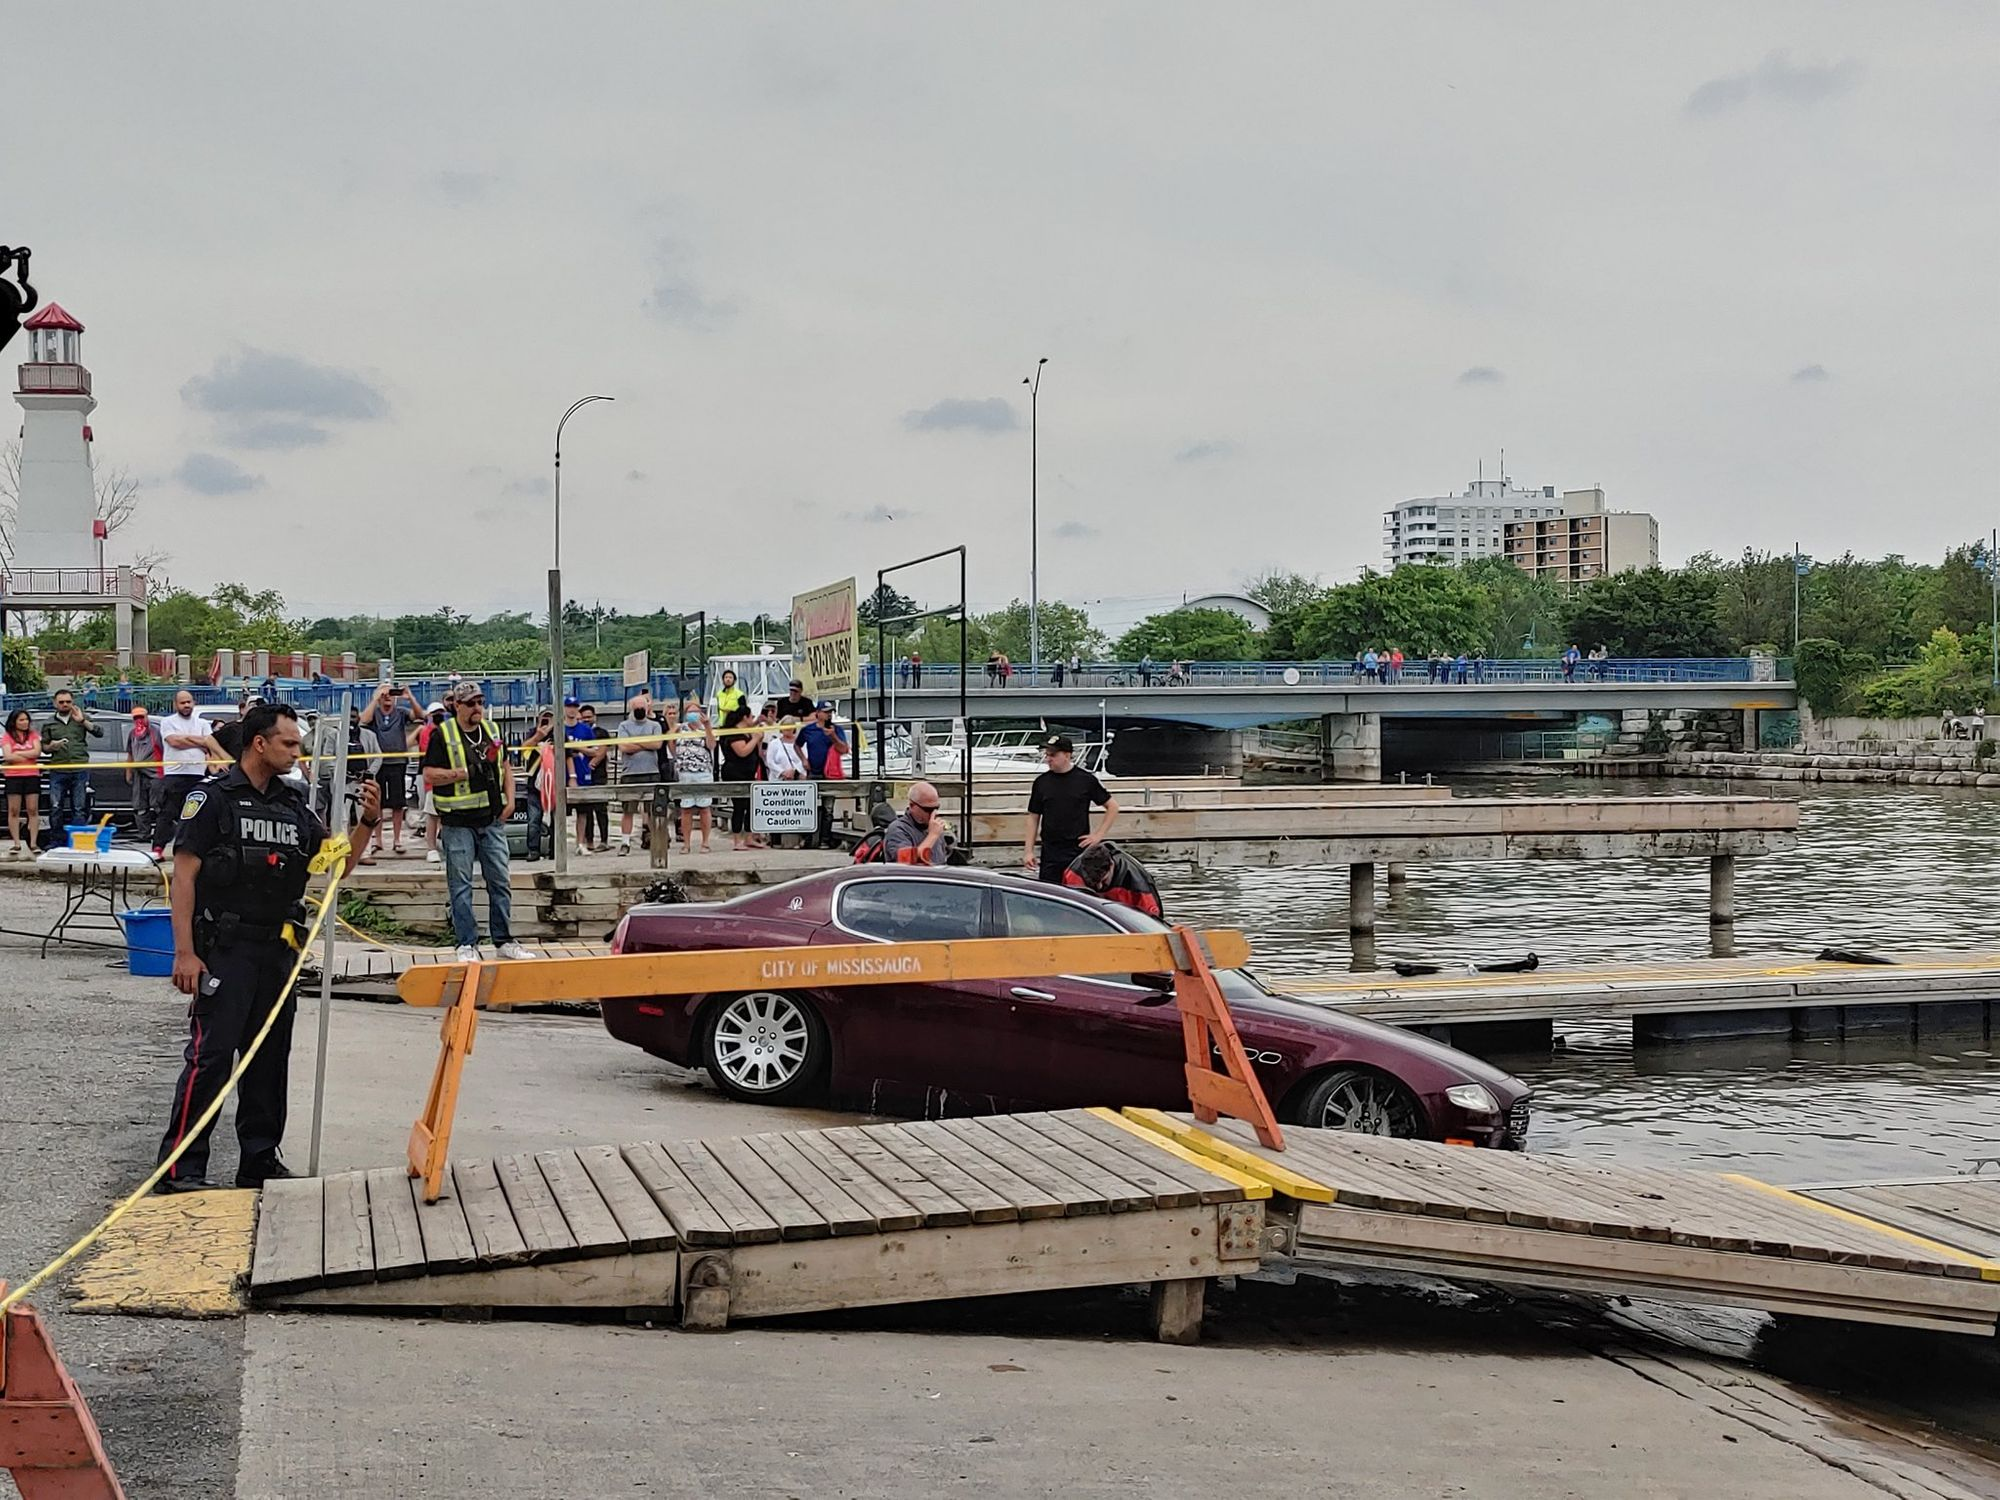 Maserati Fished From the Credit River